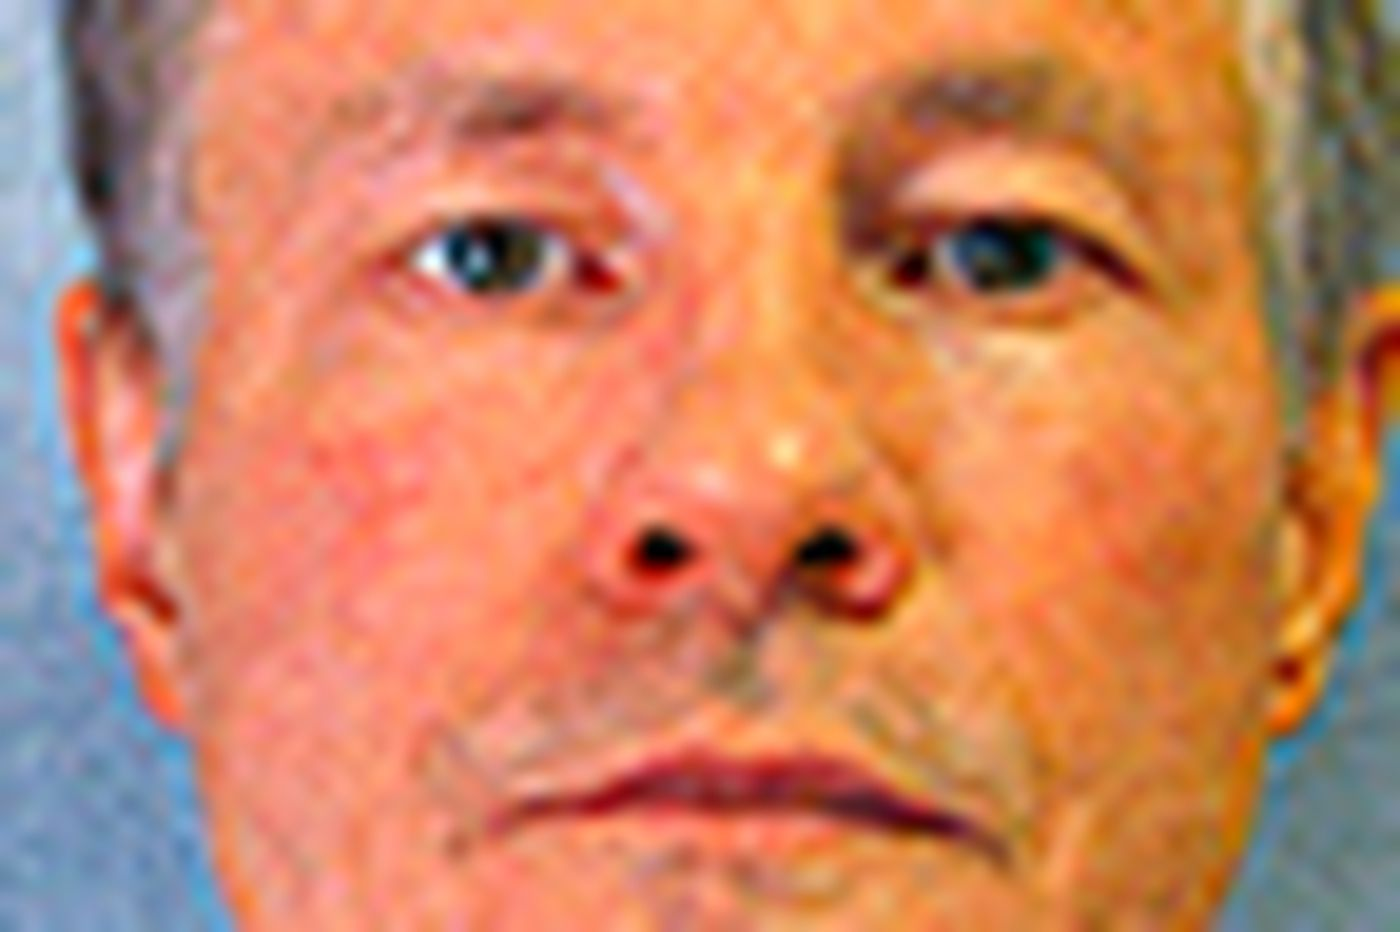 U.S. Supreme Court affirms stay of execution for Hubert L. Michael Jr.